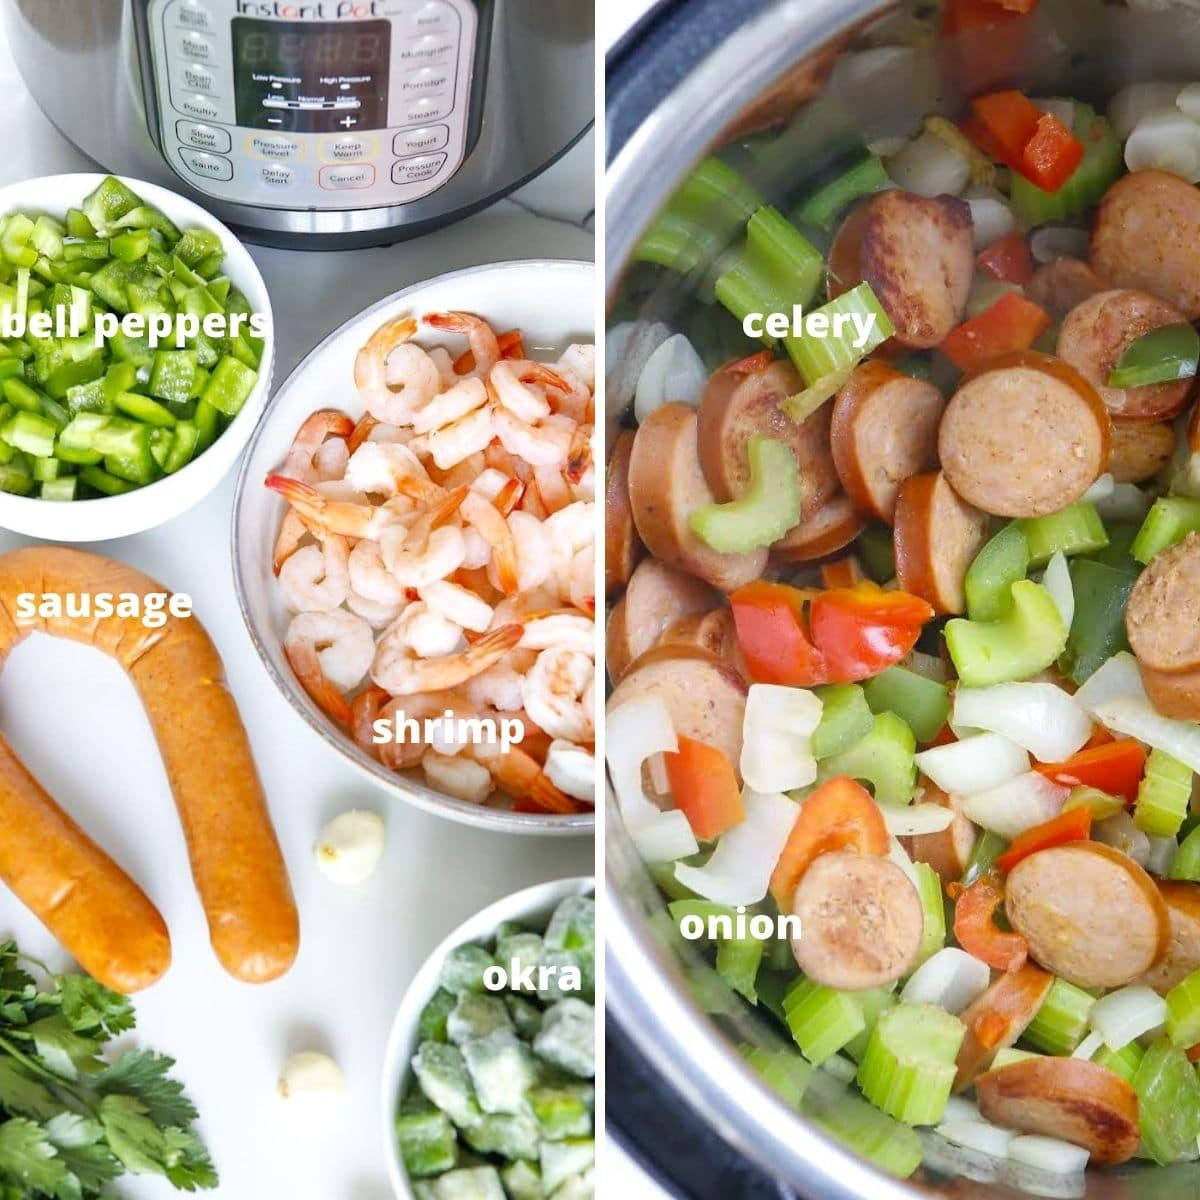 the Some of the ingredients to make instant pot gumbo, shrimp, sausage, celery, okra, peppers, onions